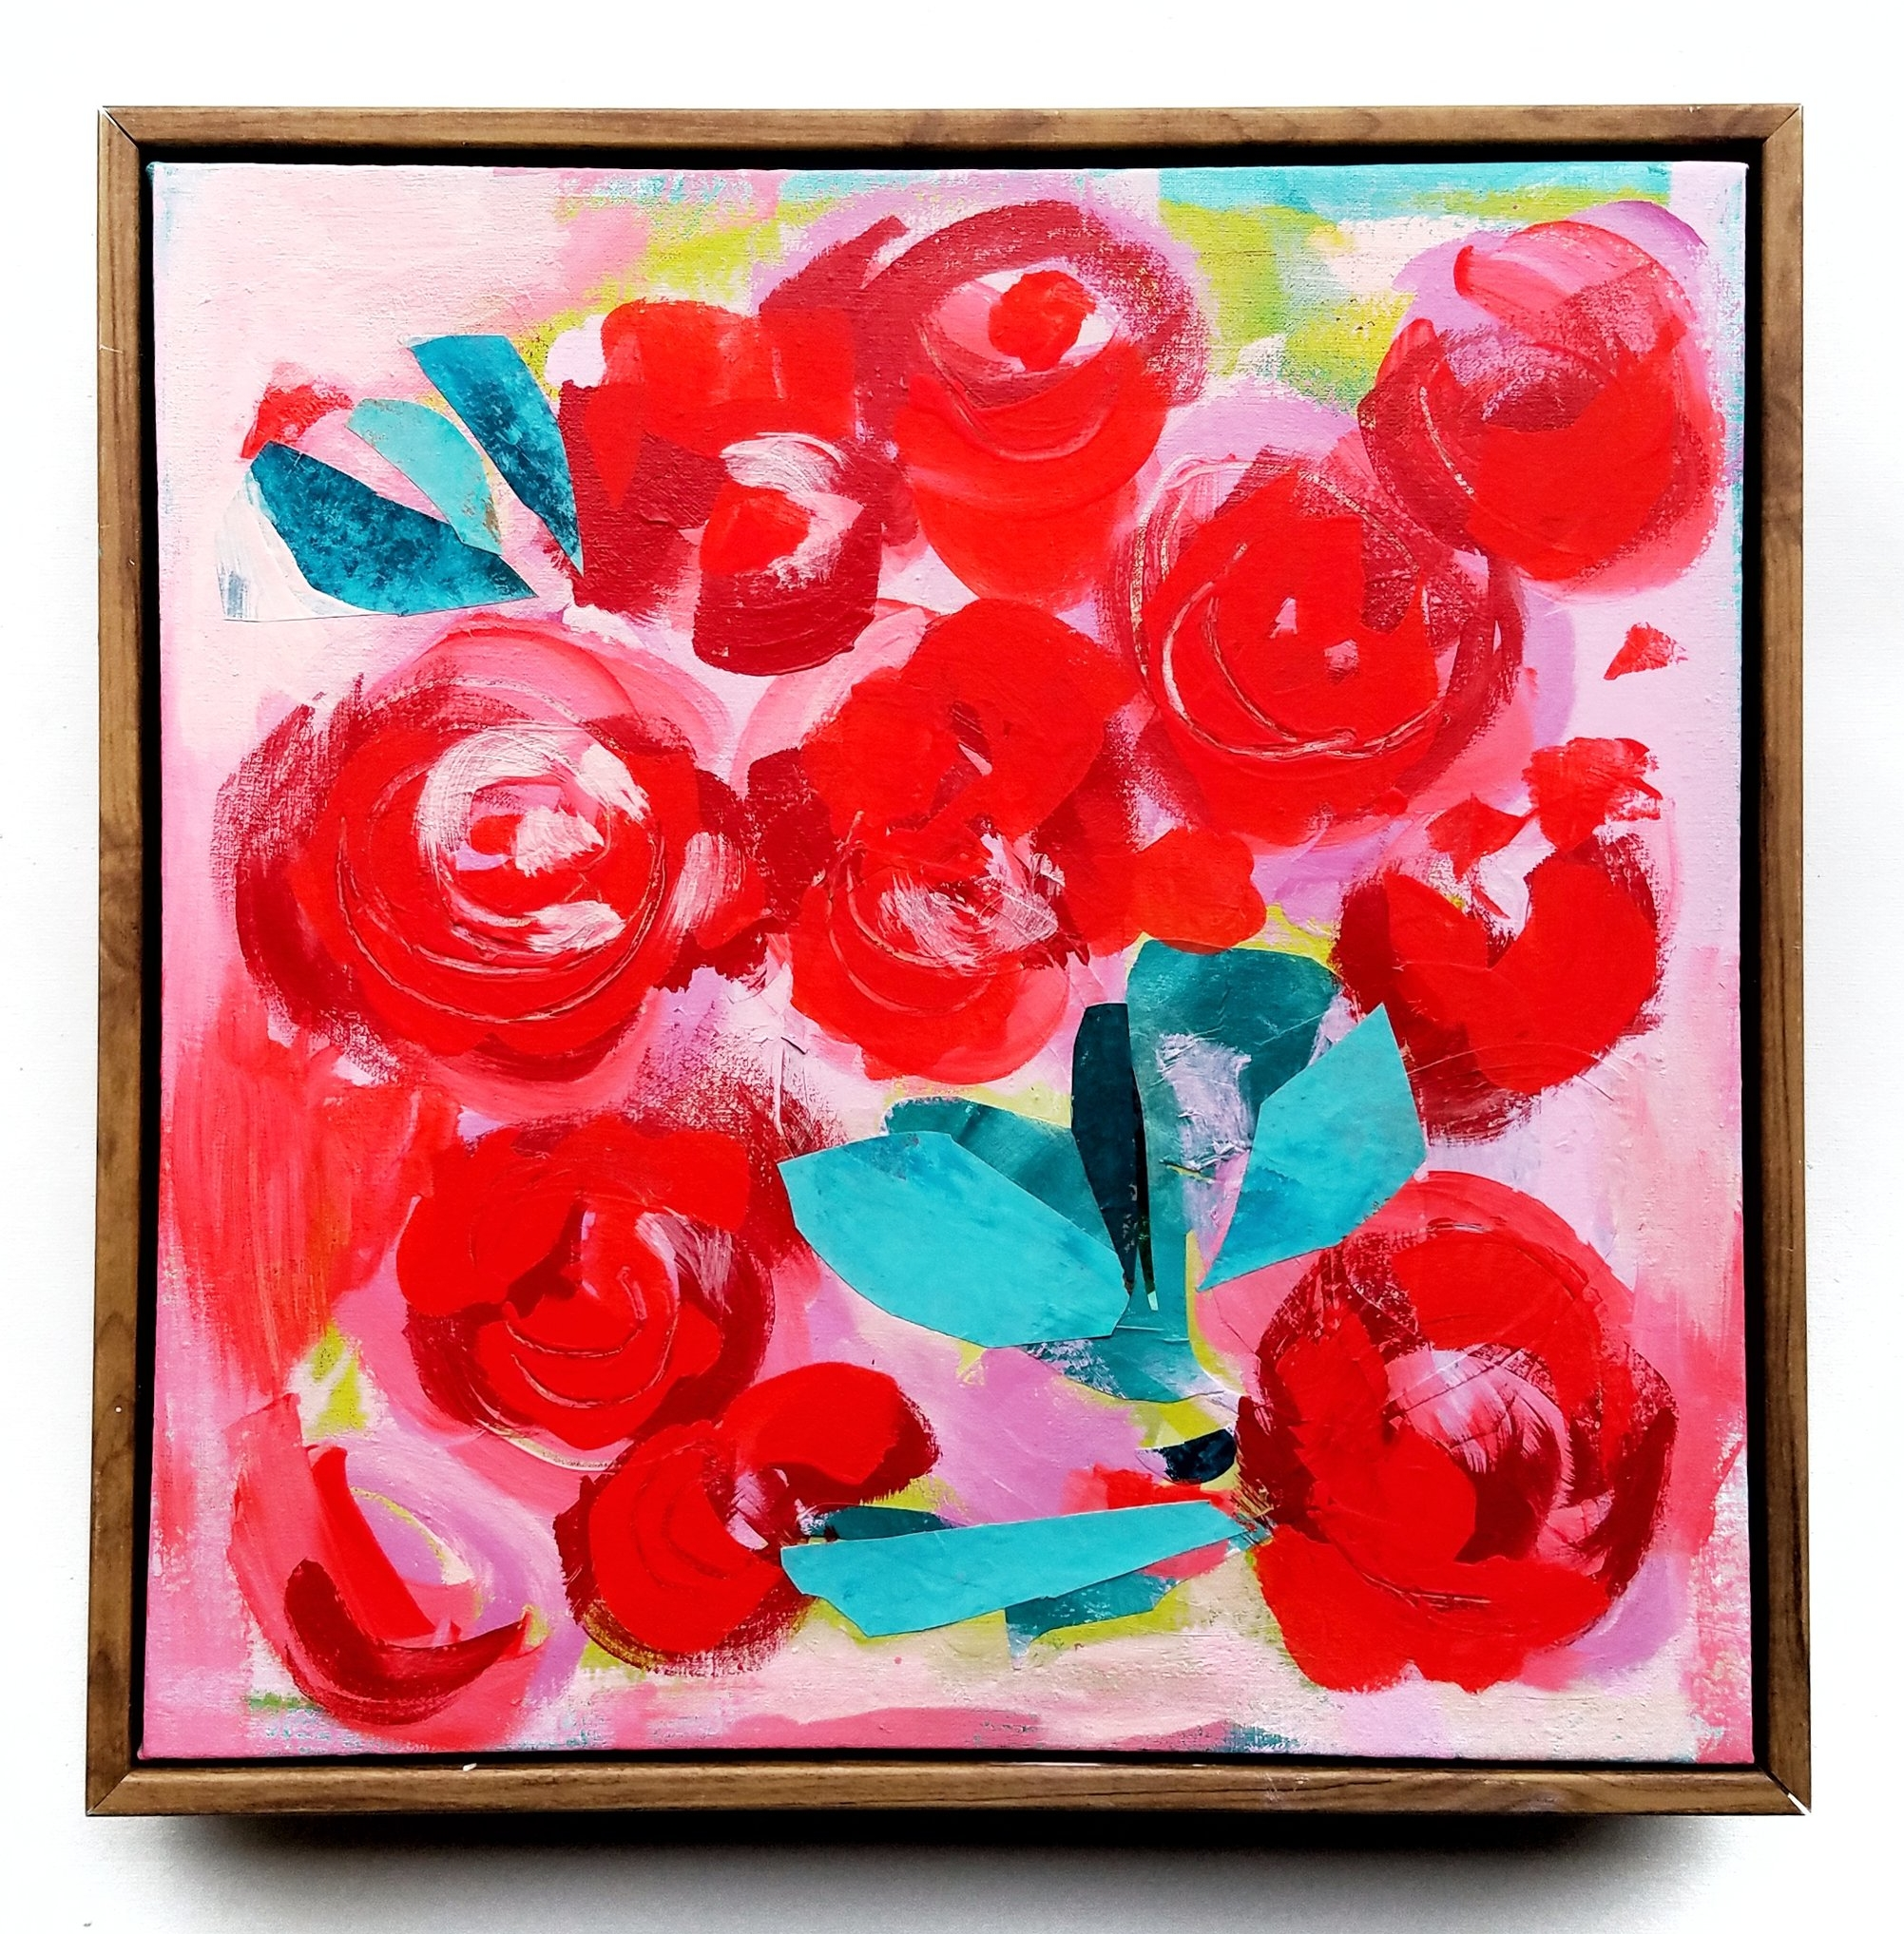 "11 in. x 11 in. Original mixed media on canvas titled ""Roses for the Midnight Social"""